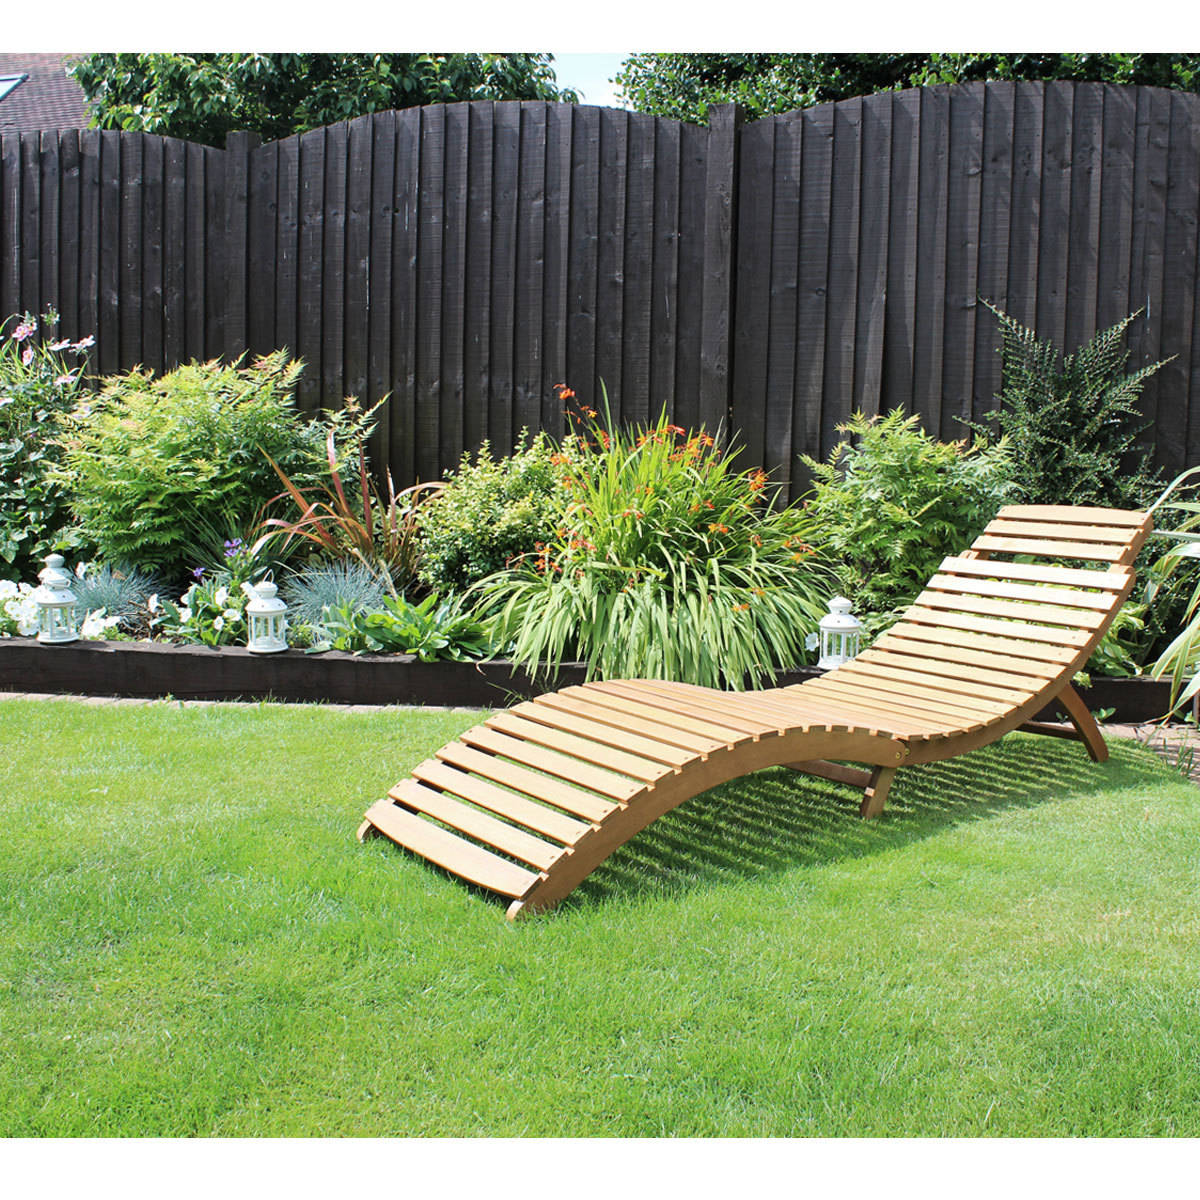 garden loungers large-folding-wooden-curved-sun-lounger-in-sit- WDIPSHL